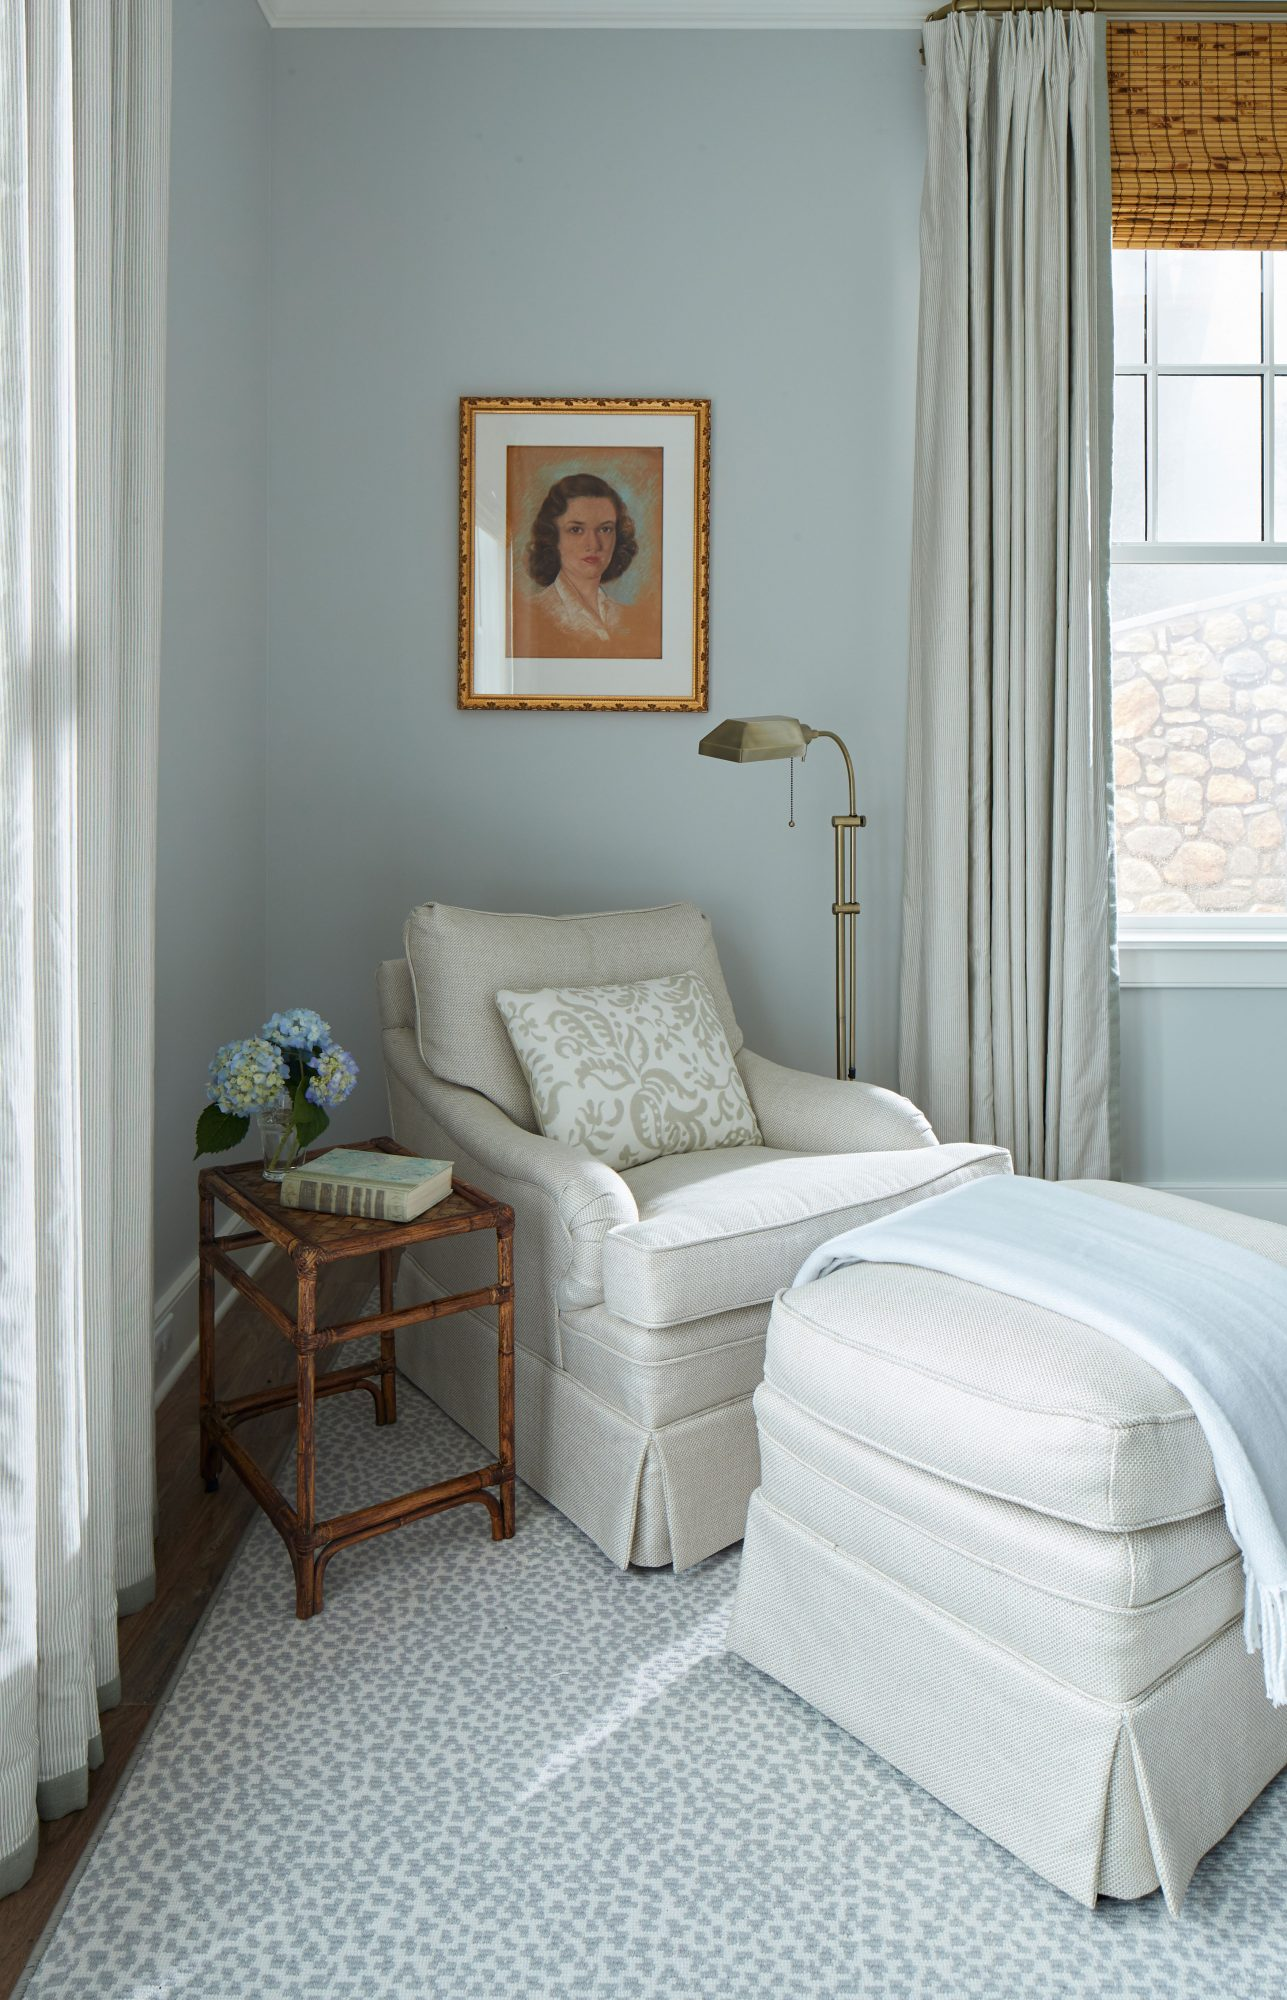 Cozy Chair in Master Bedroom with Family Portrait Above